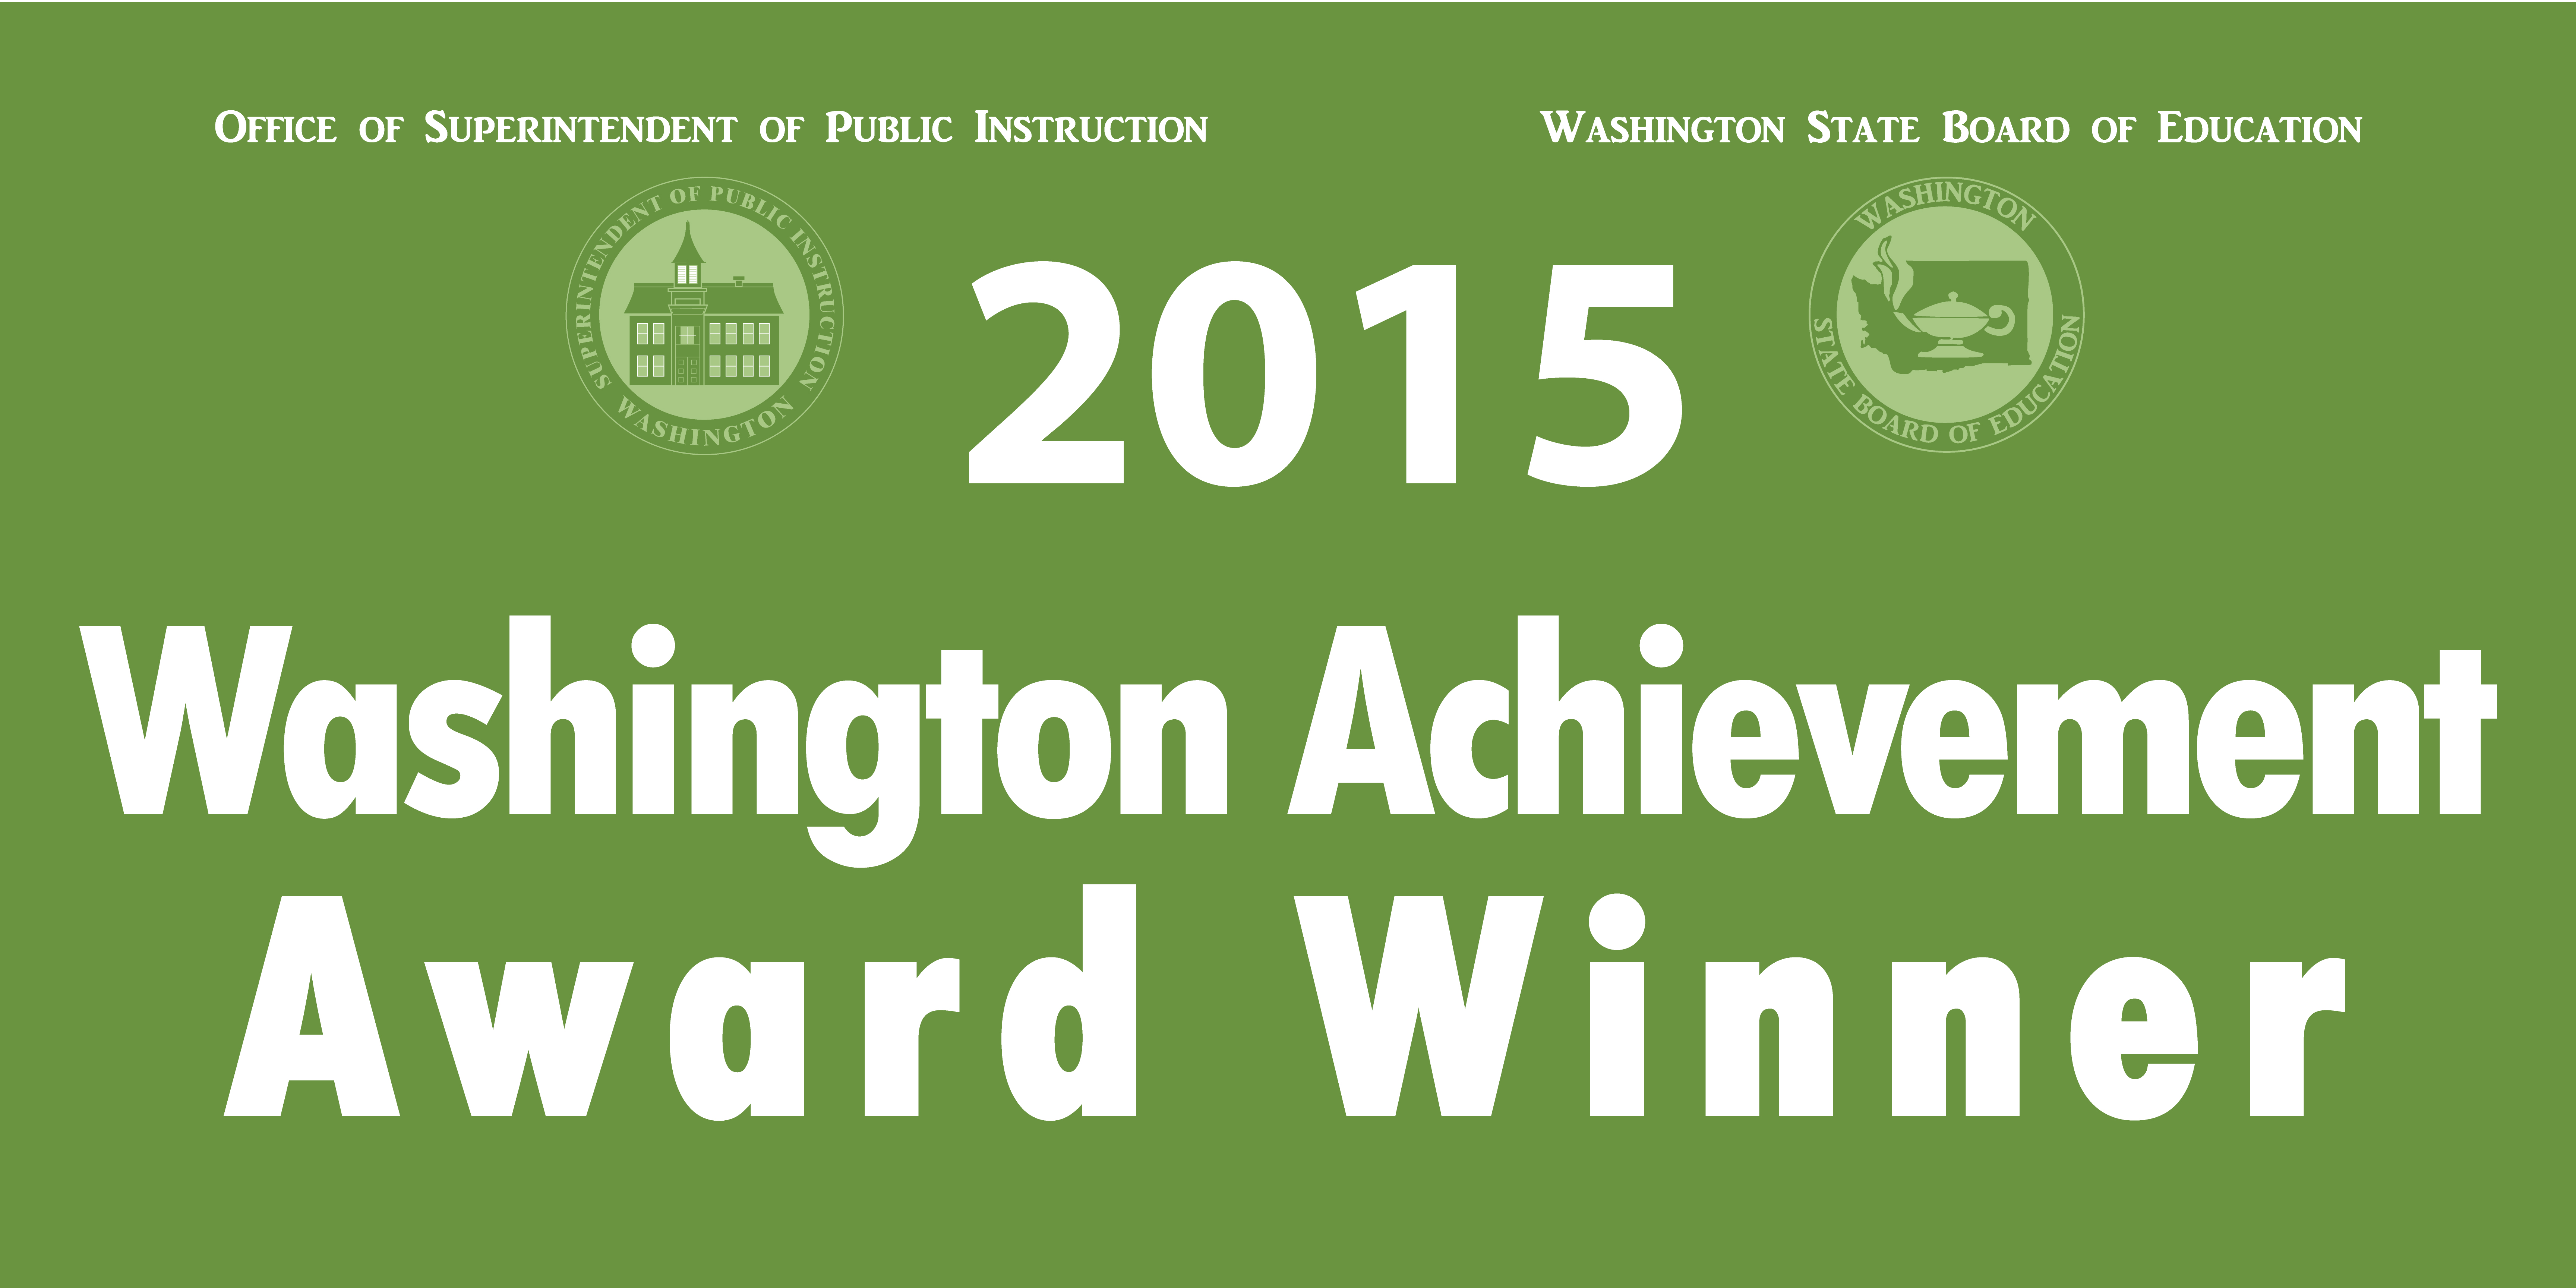 2015 Washington Achievement Award Winner